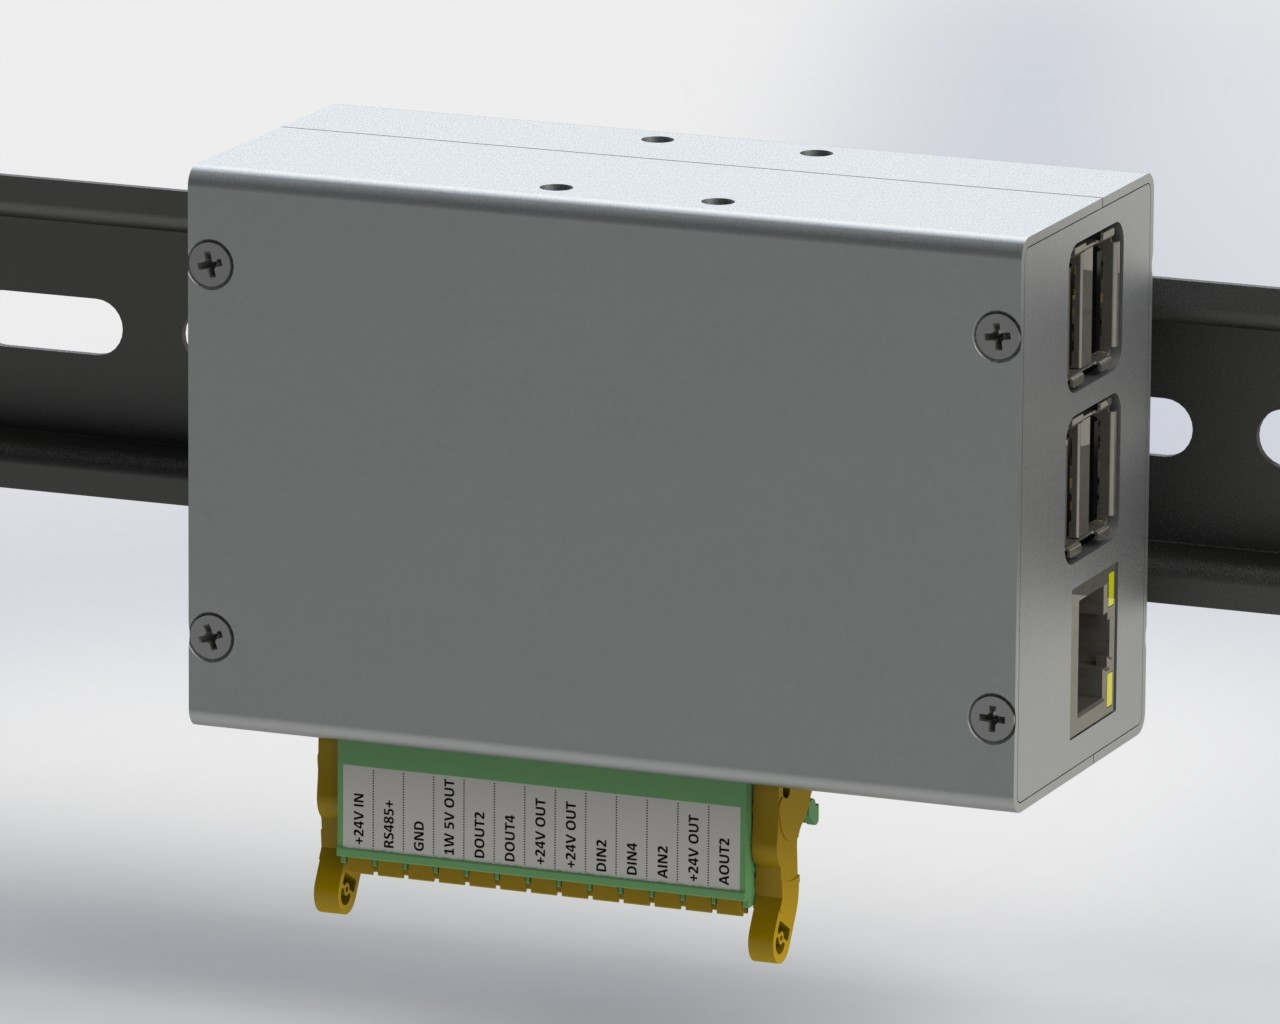 Monarco HAT and Raspberry Pi on a DIN rail - horizontal mounting.